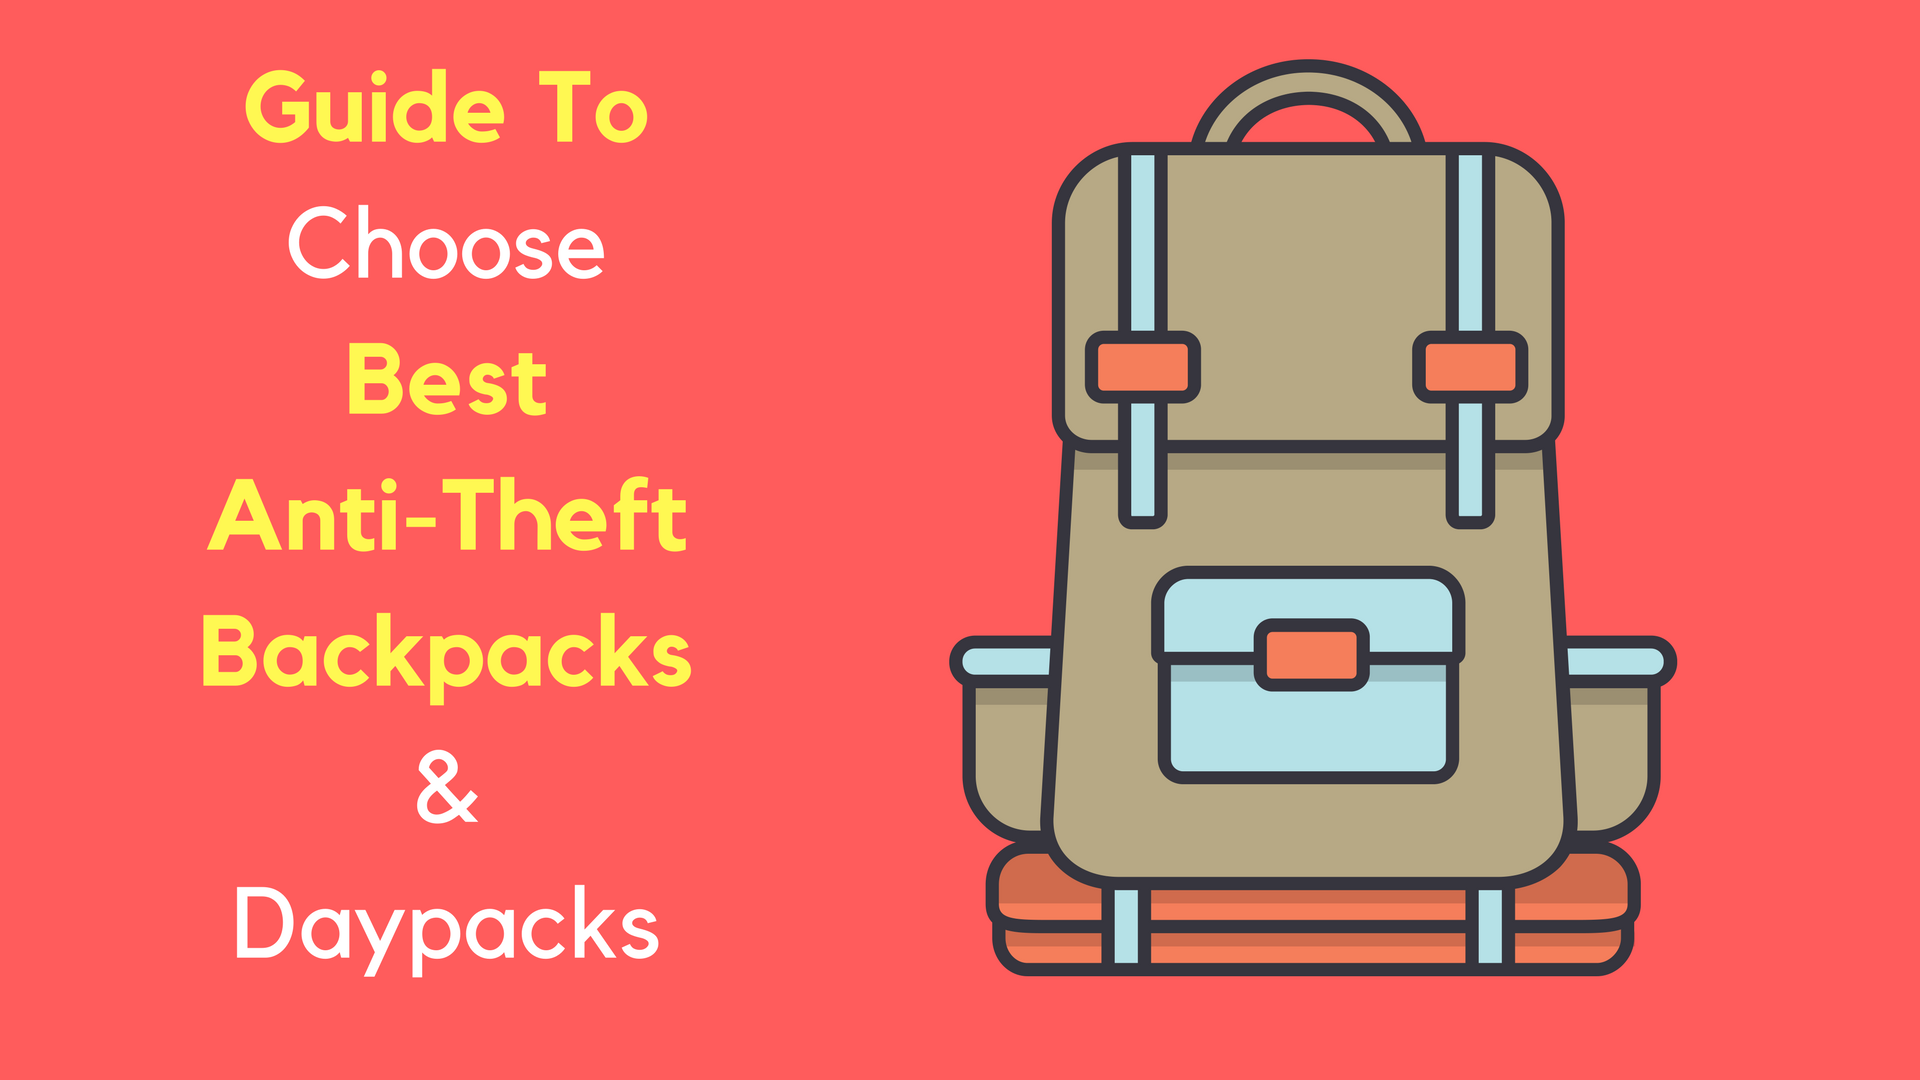 8 Best Anti-Theft Backpacks for Secure Travel in 2017